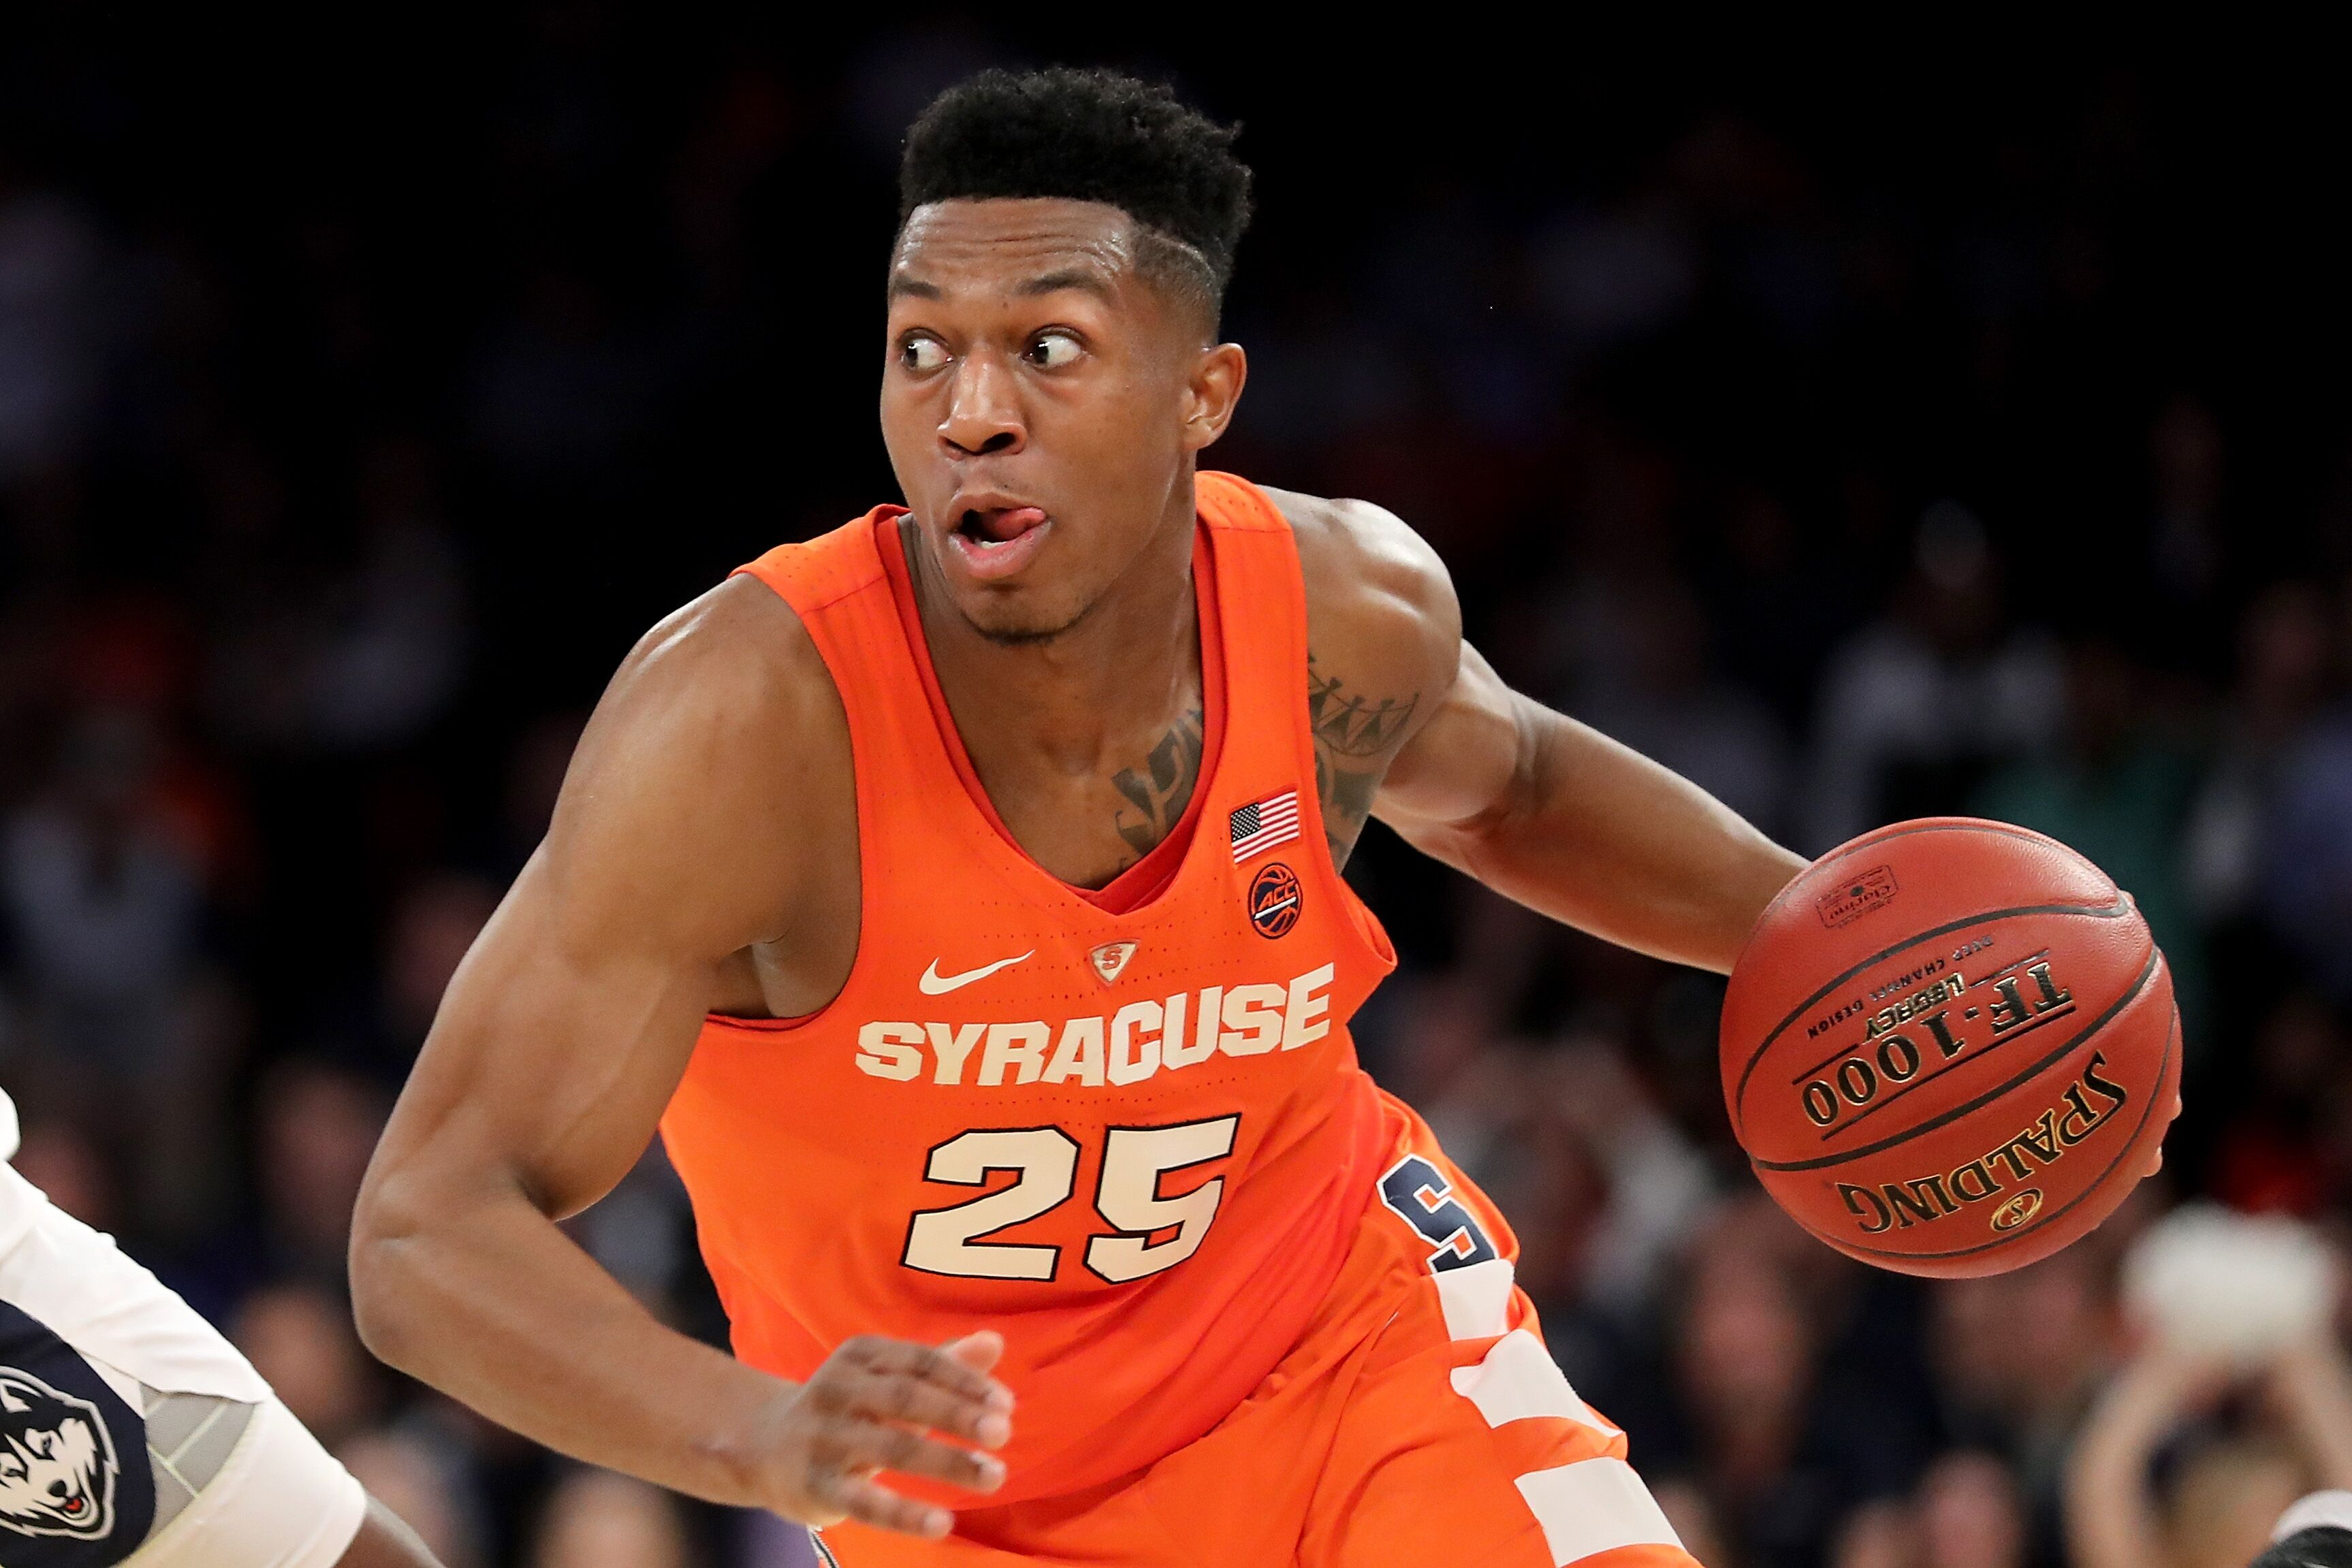 Clemson Vs. Syracuse: College Basketball Game Preview, TV